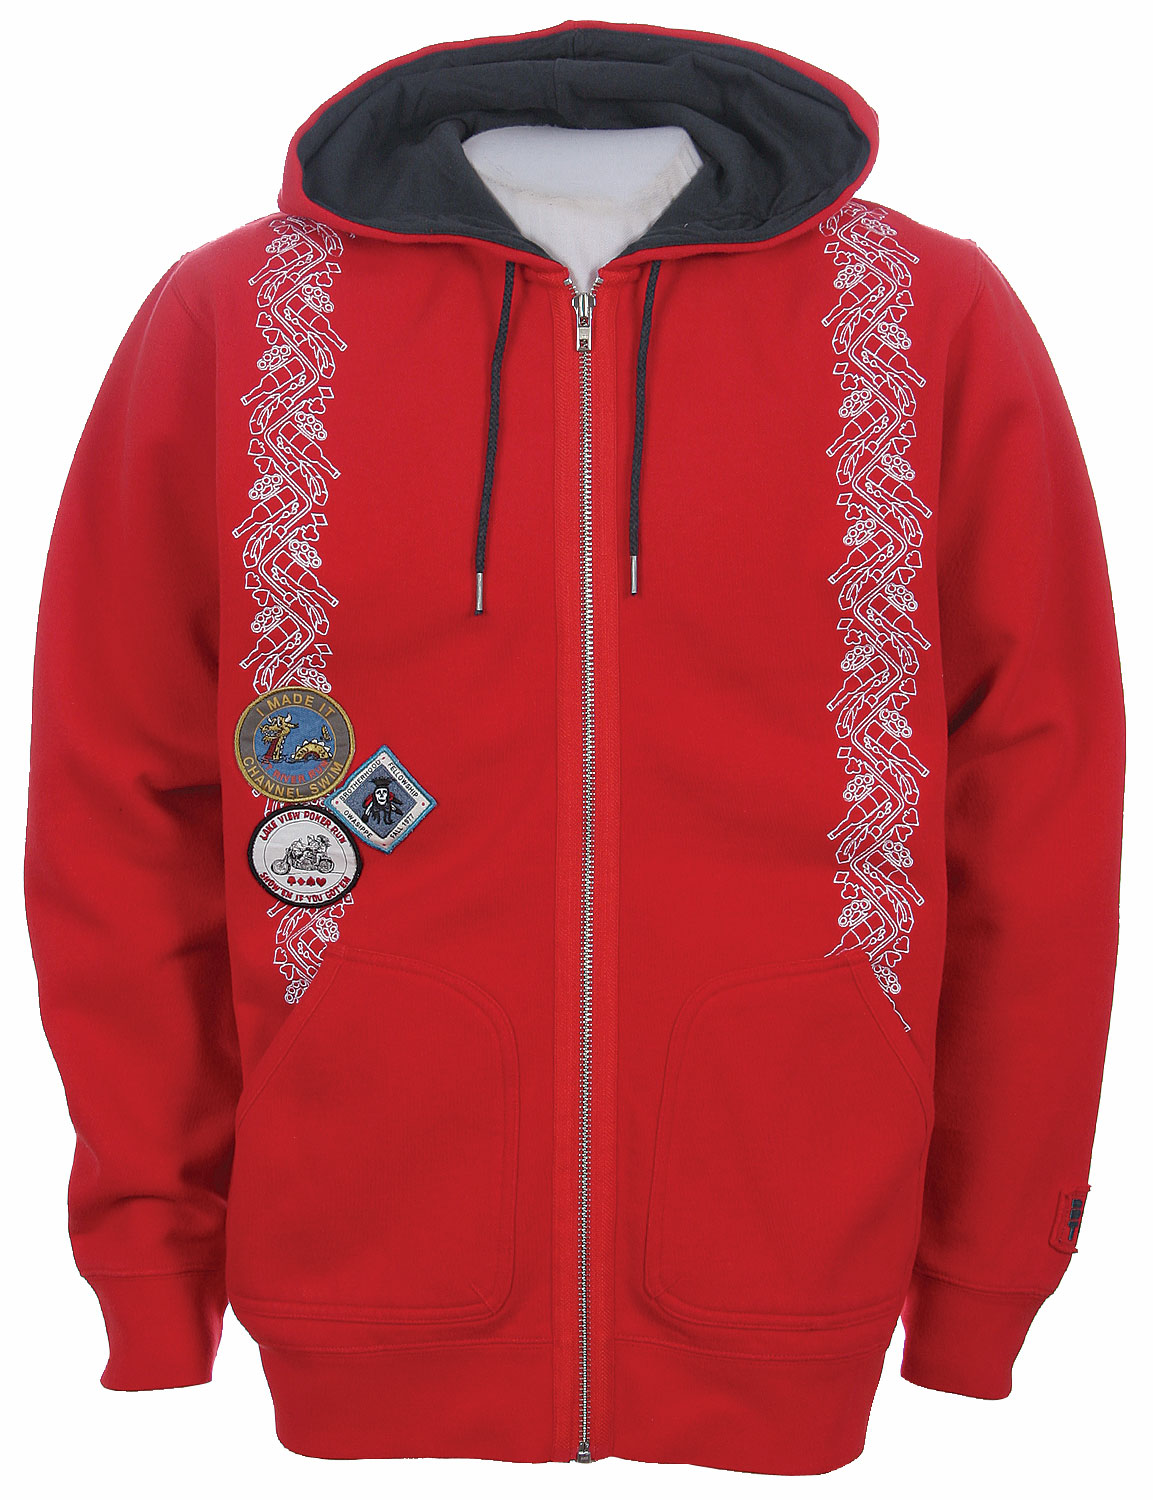 Snowboard A hooded sweatshirt with thick hide and cozy underside lining. The style of this one is something like boy scouts and a varsity jacket, as it has patches on it. The patches feature a happy sea monster dragon, a royal skeleton, and a creature speeding along on a motorcycle. Whatever earned these badges must've been fun. There's also a pattern along the sides of the front akin to collegiate honors.    Made of eighty-percent cotton and twenty-percent polyester, the warm hoodie can be bought in a number of sizes.Key Features of the Burton Noname Hoodie La Gray:  80% Cotton/20% Polyester. - $29.95